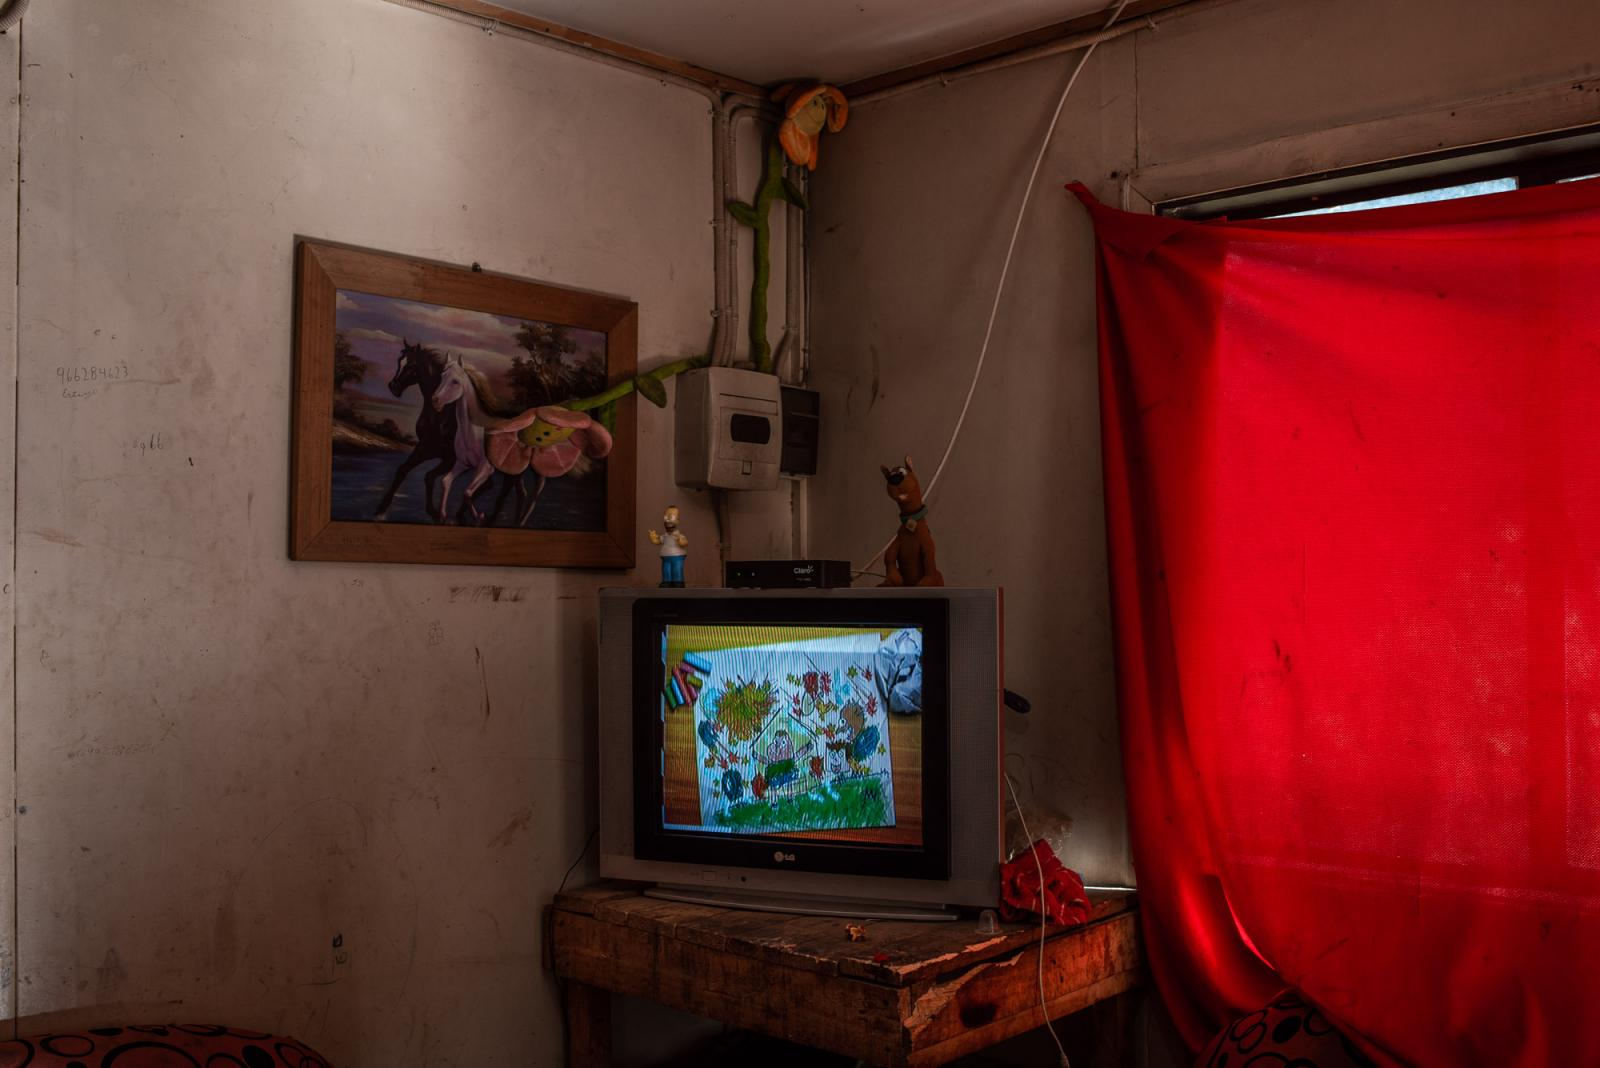 The living room of the Torres-Toro family. One of the sons, S.T (14) was shot in the leg by the police during a raid at this home in Pidima area, Araucanía, Since April 20, 2017 Silvestre lives with five bullets in his left leg, one of which is partially embedded in the kneecap and another dangerously close to the femoral artery. Araucanía region, Chile. April 7th, 2019.